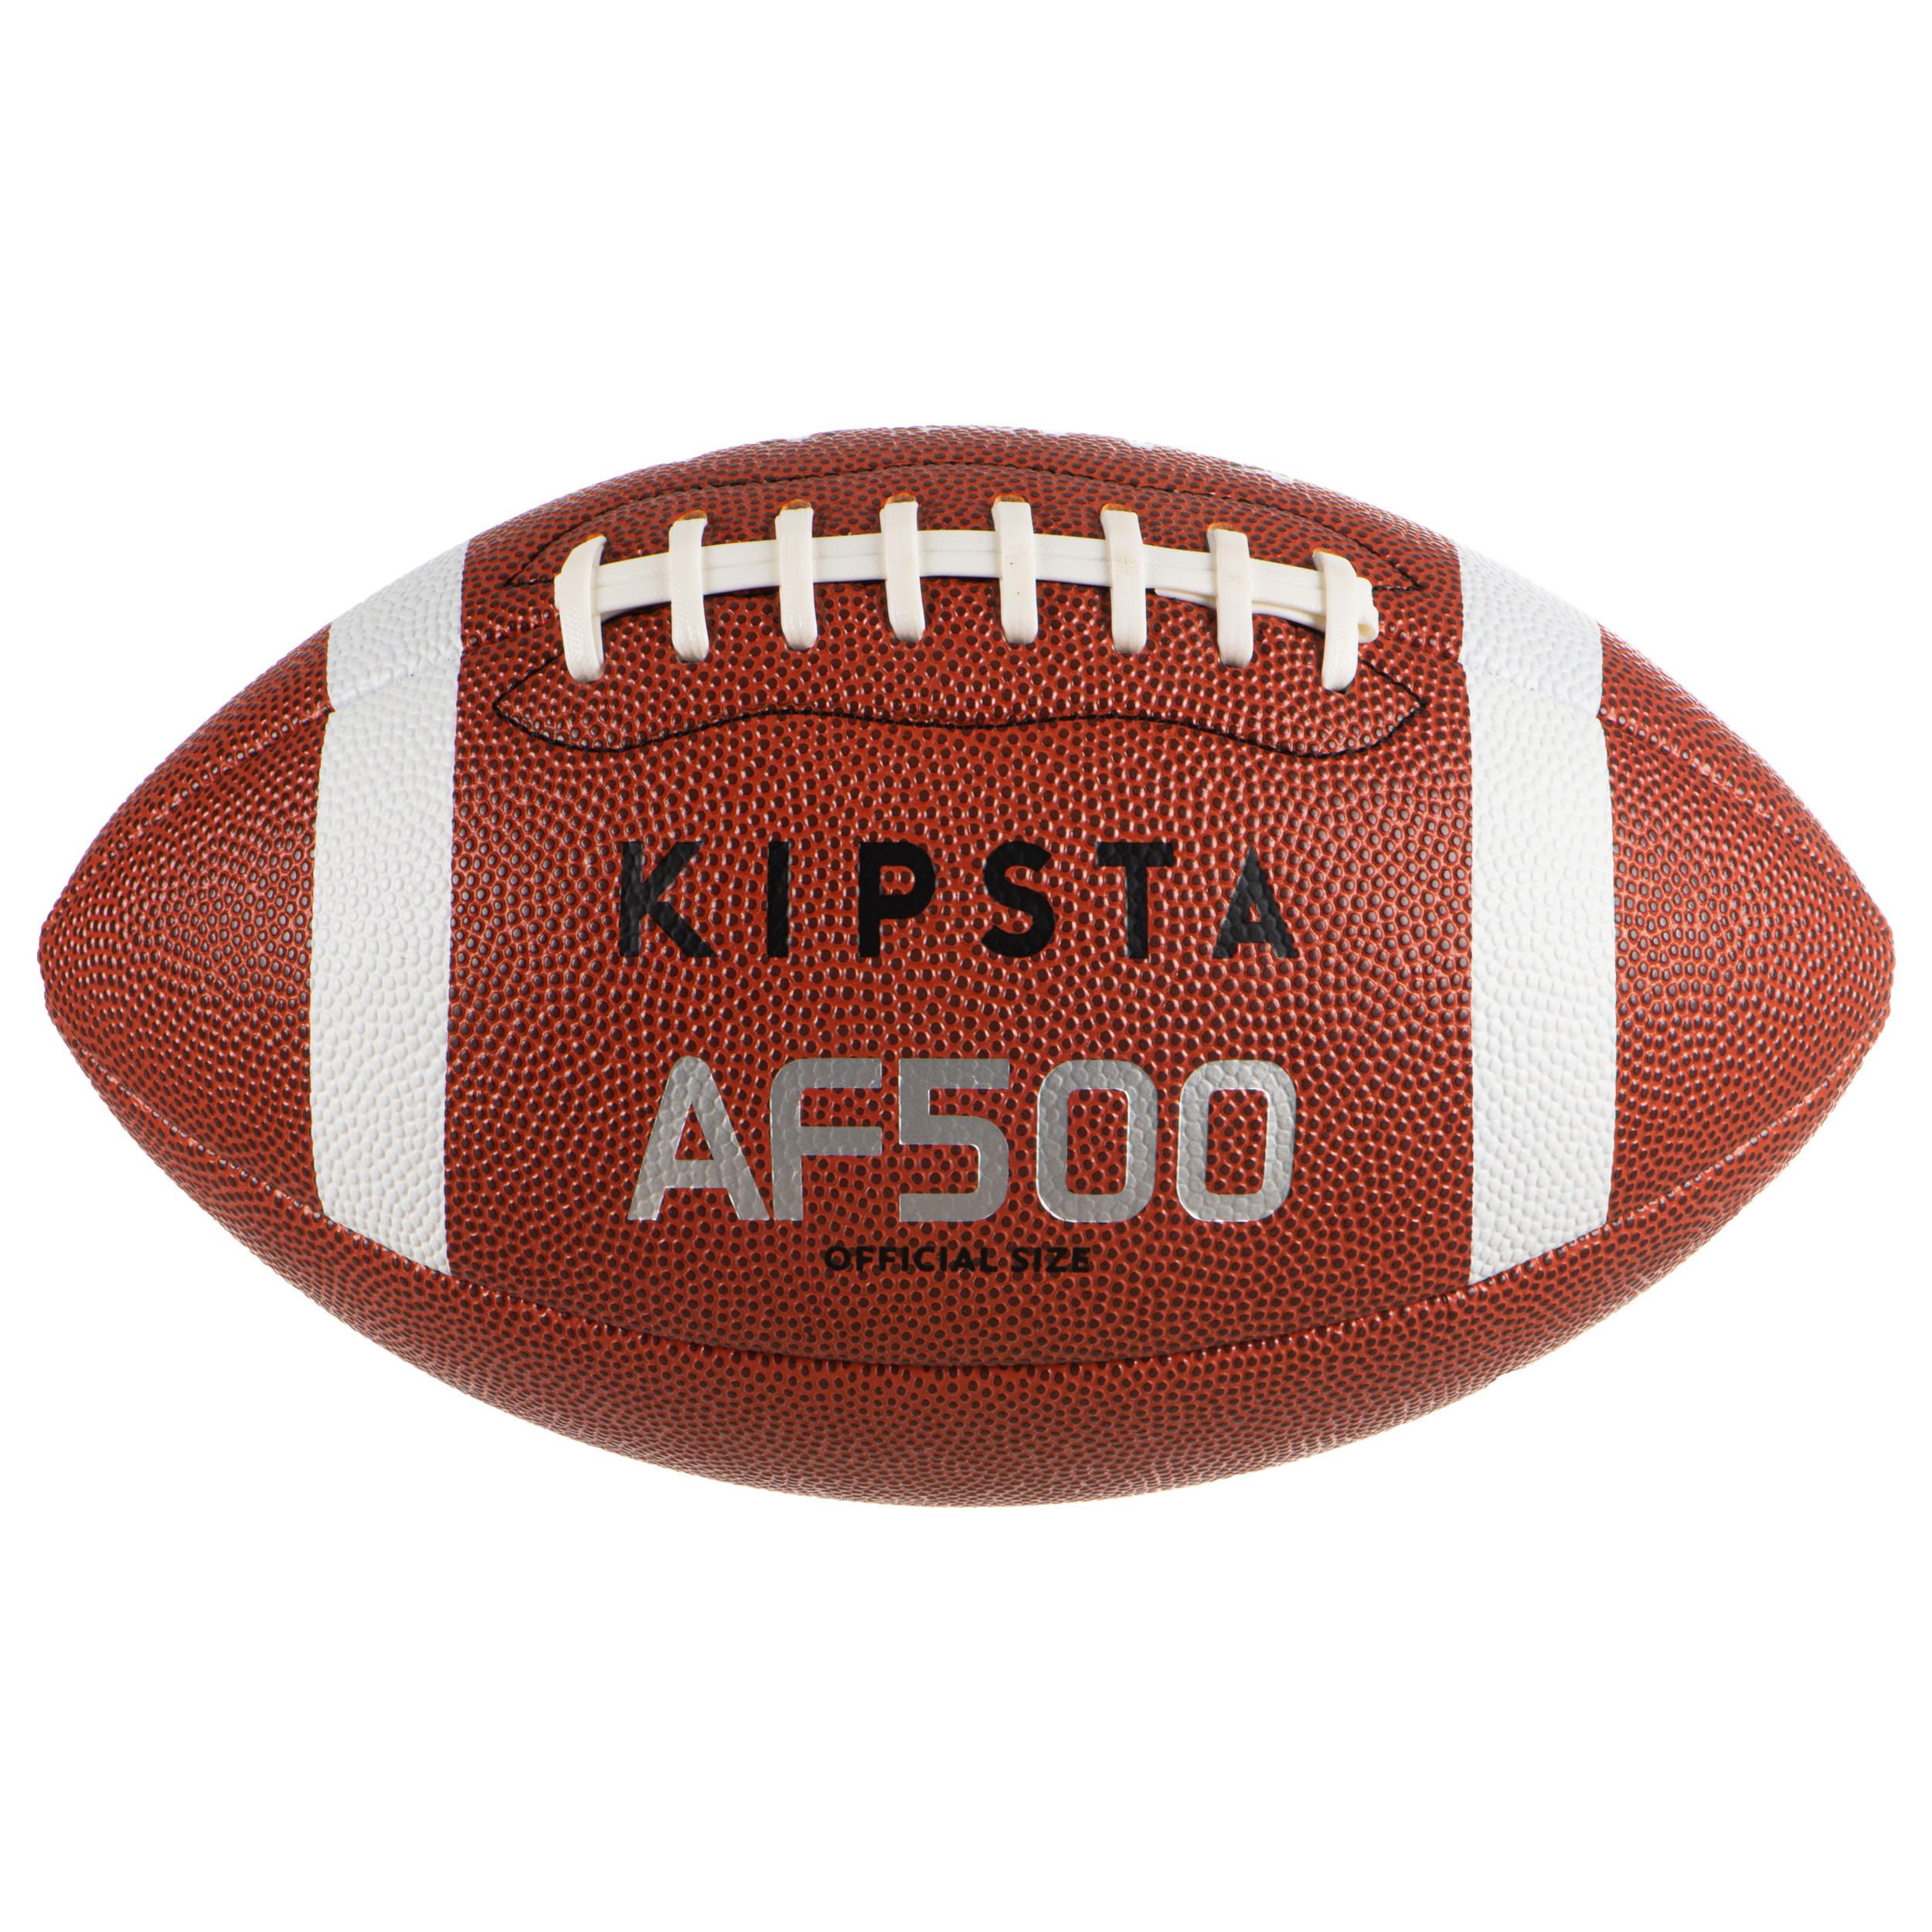 Af500 Official Size American Football Brown